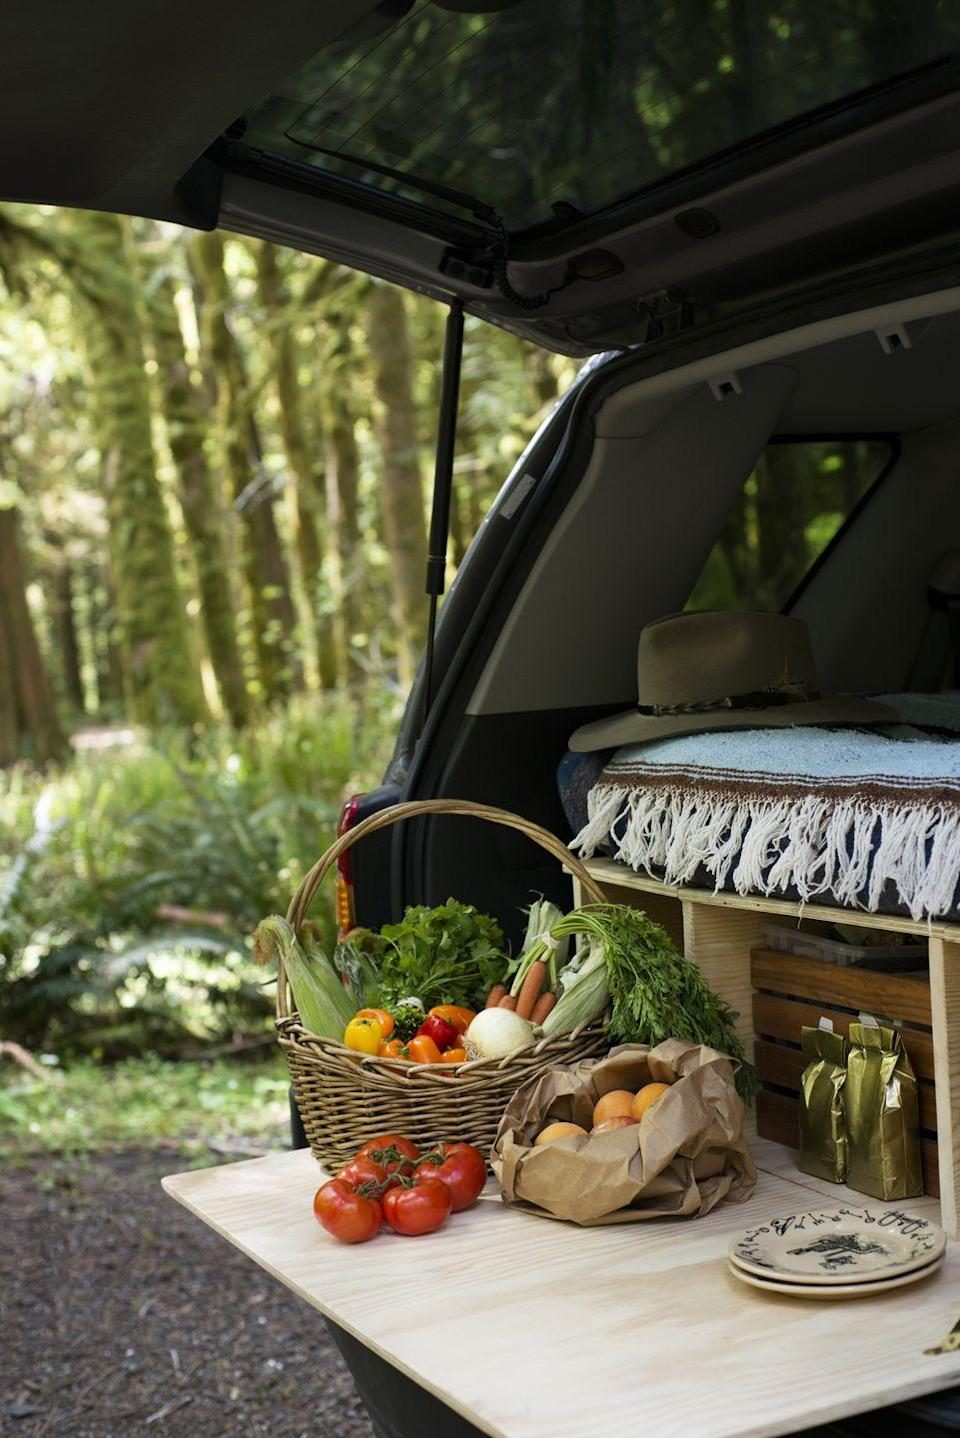 <p>Eating on the go doesn't necessarily have to equate to fast food from the car and/or rest stops. Make the most of your car-to-table dining experience by elongating your trunk with a slab of wood, which you can store beneath your luggage and supplies. You can even DIY an enclosed wood storage unit to fit the width of your trunk, then convert the lid into a sturdy table. </p>